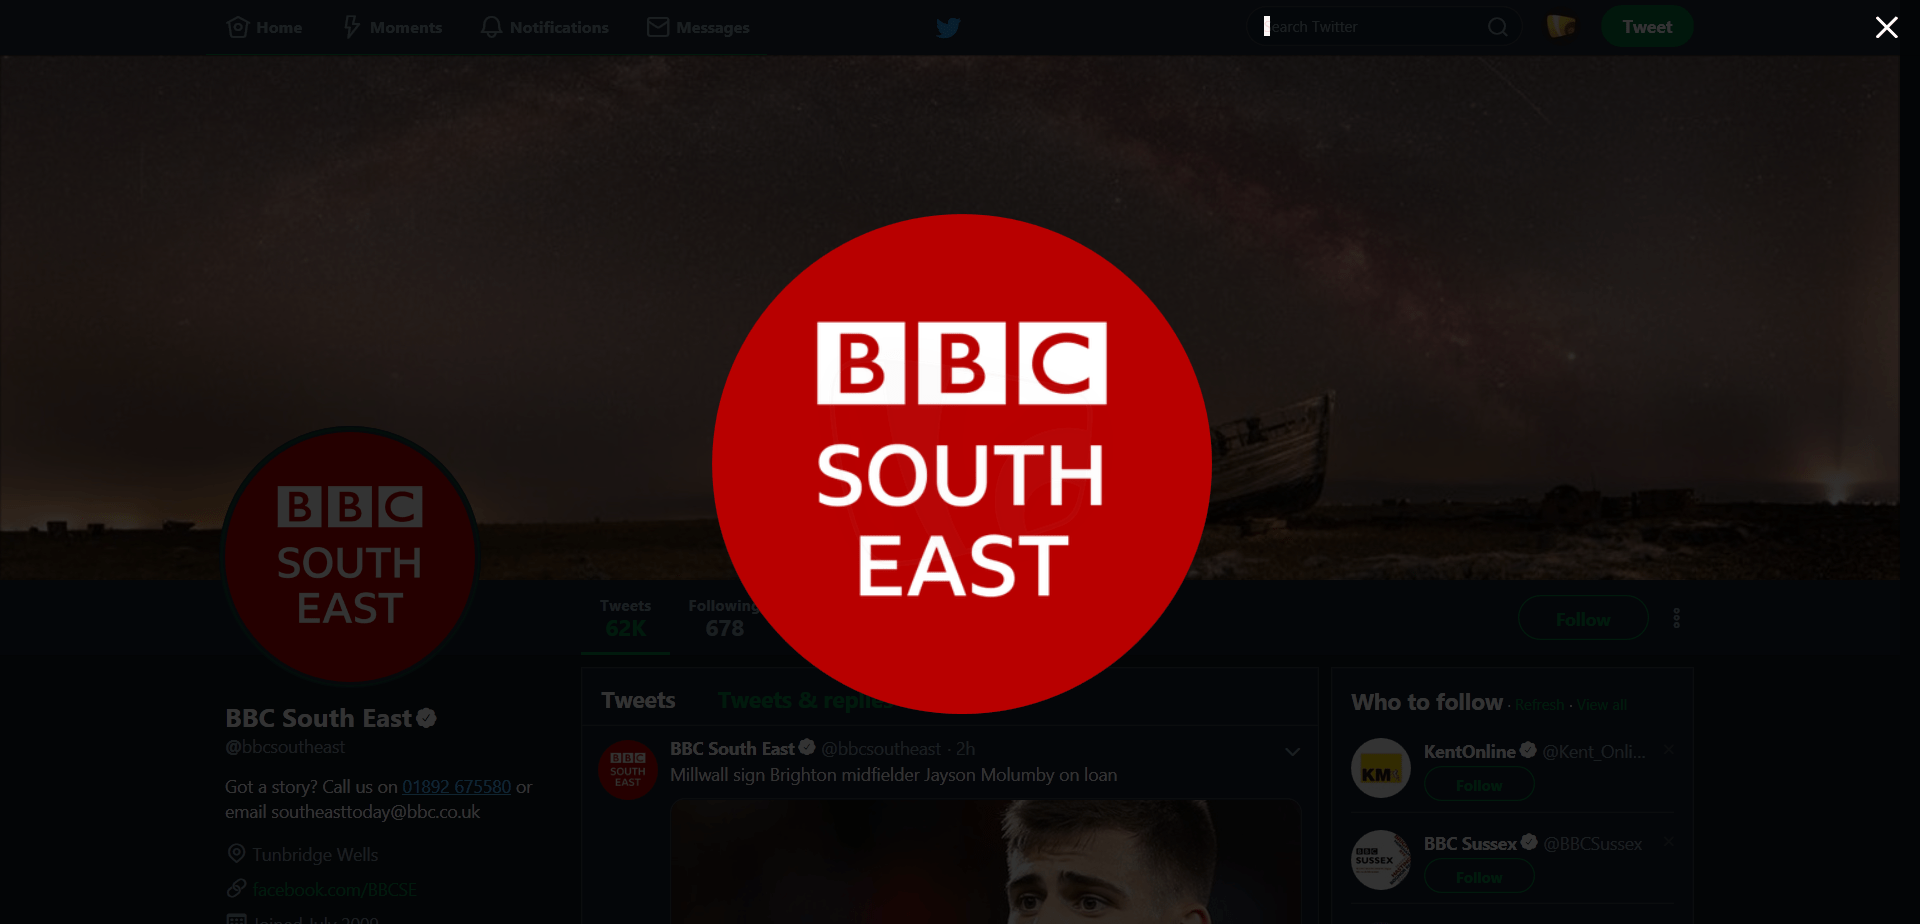 PICTURED: BBC South East branding on social media.